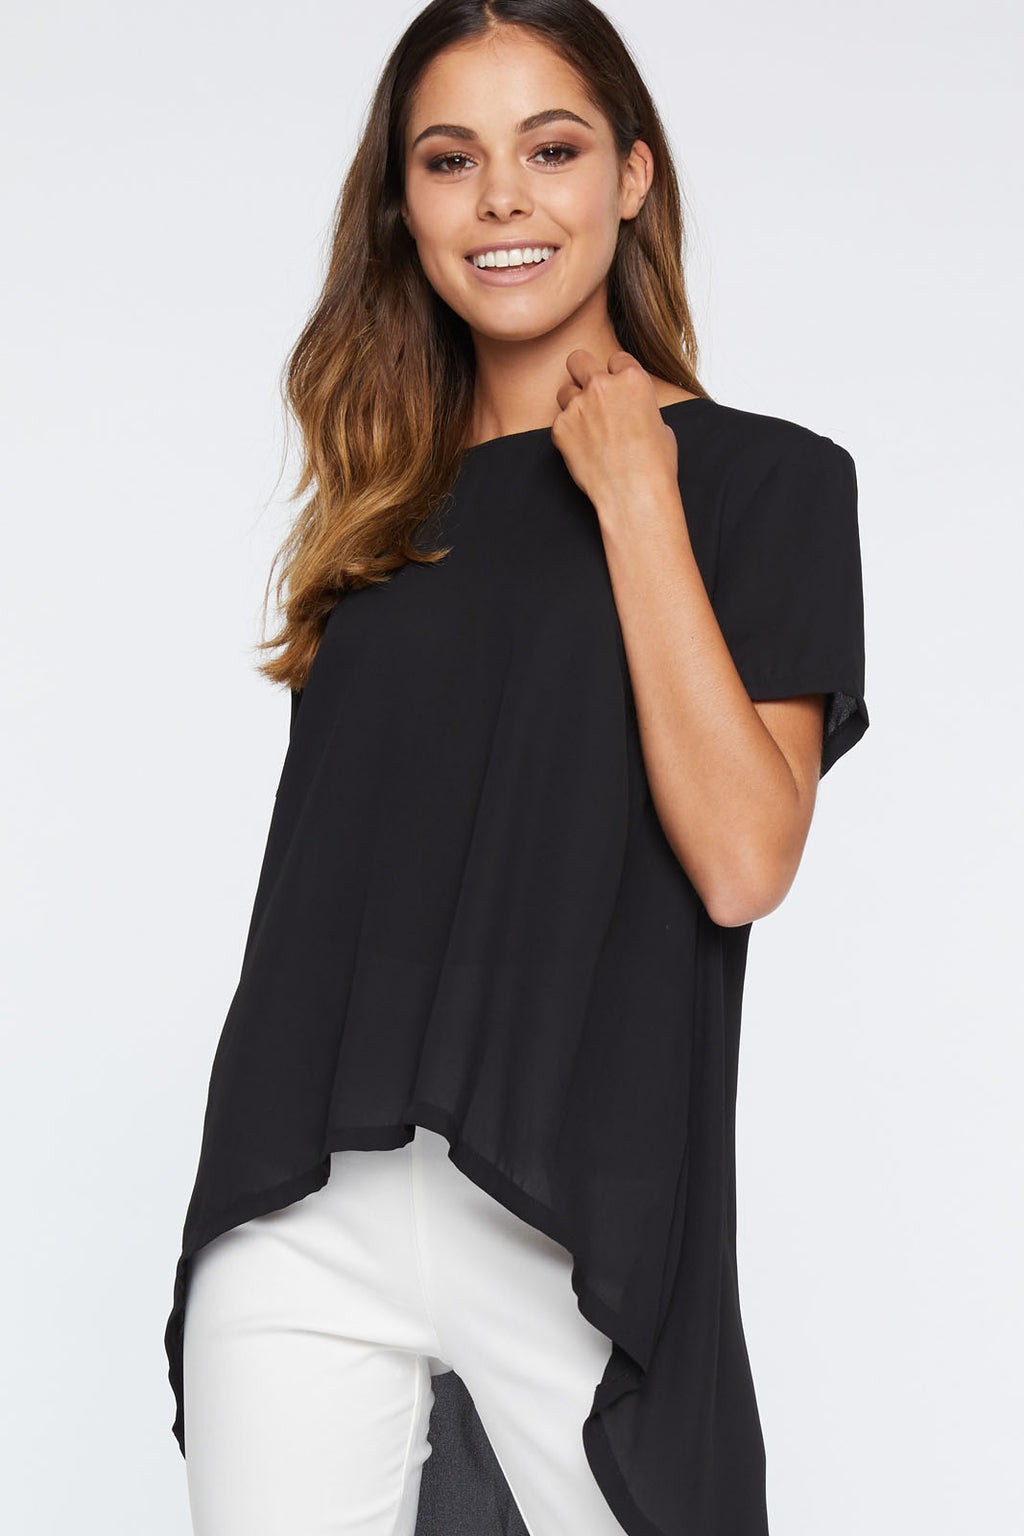 LIZZO WATERFALL TAIL TOP - Saphyra Boutique